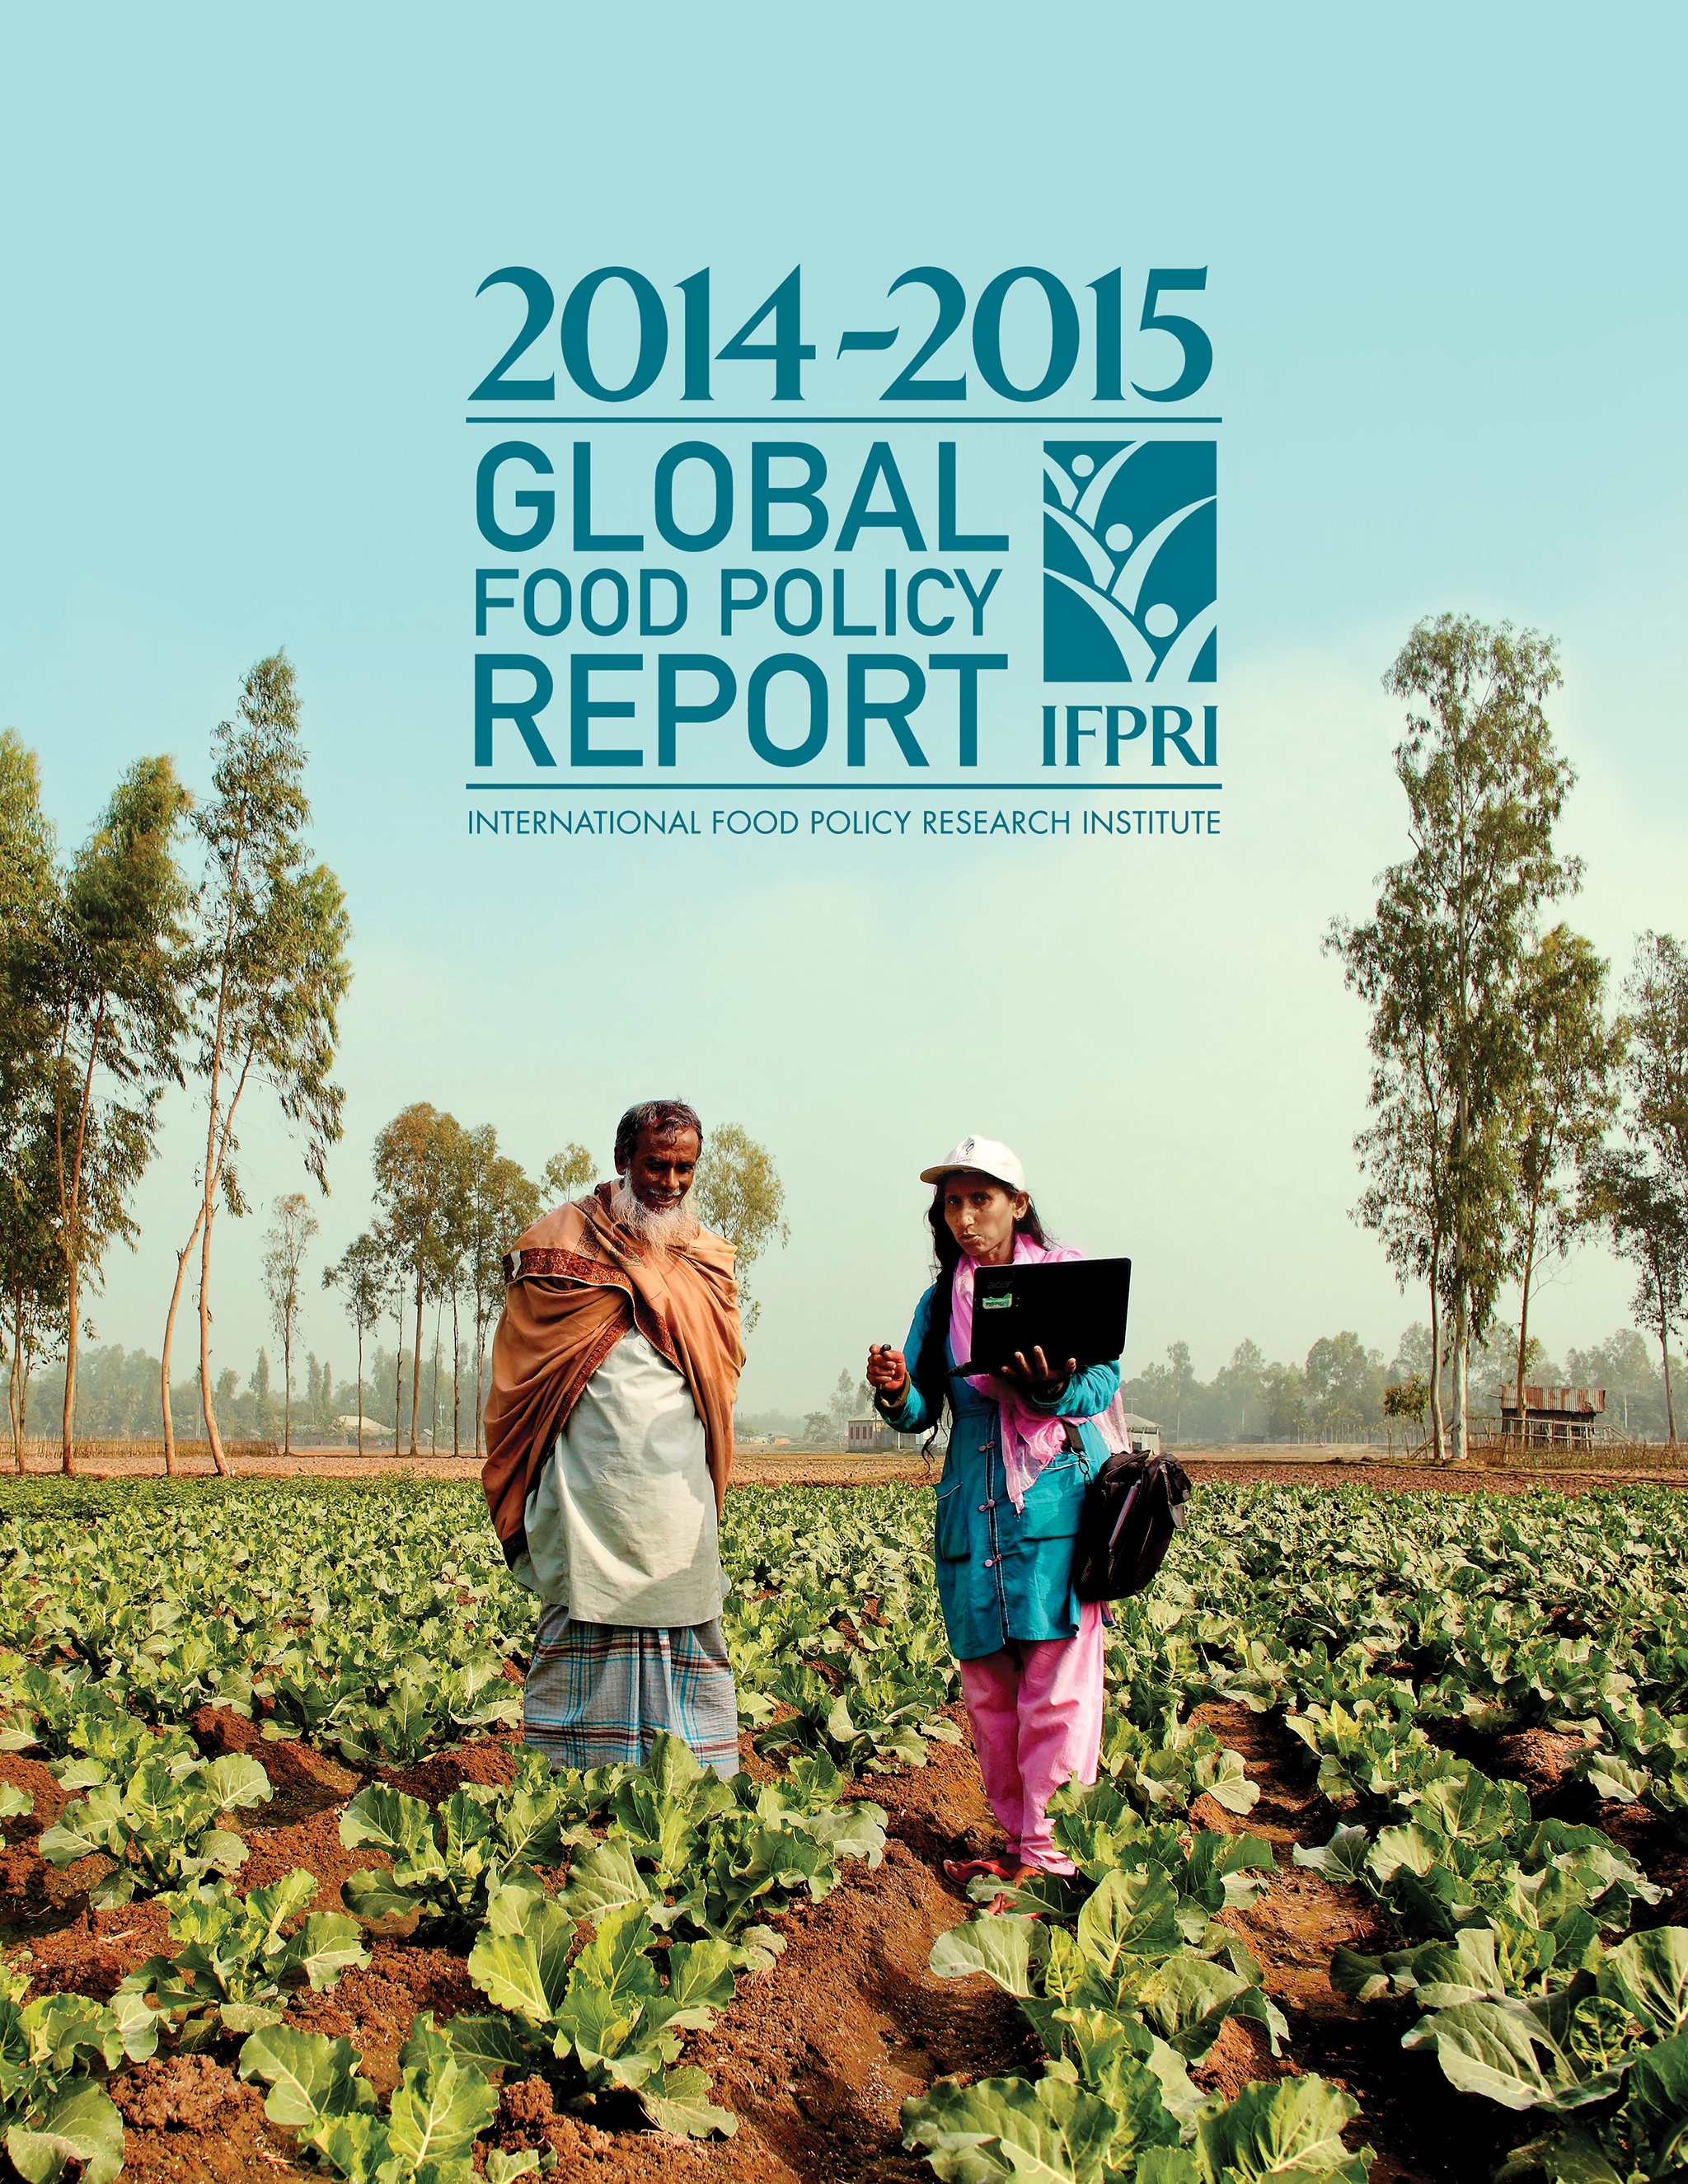 The IFPRI 2014-2015 Global Food Policy Report: Focus of Sanitation and Nutrition